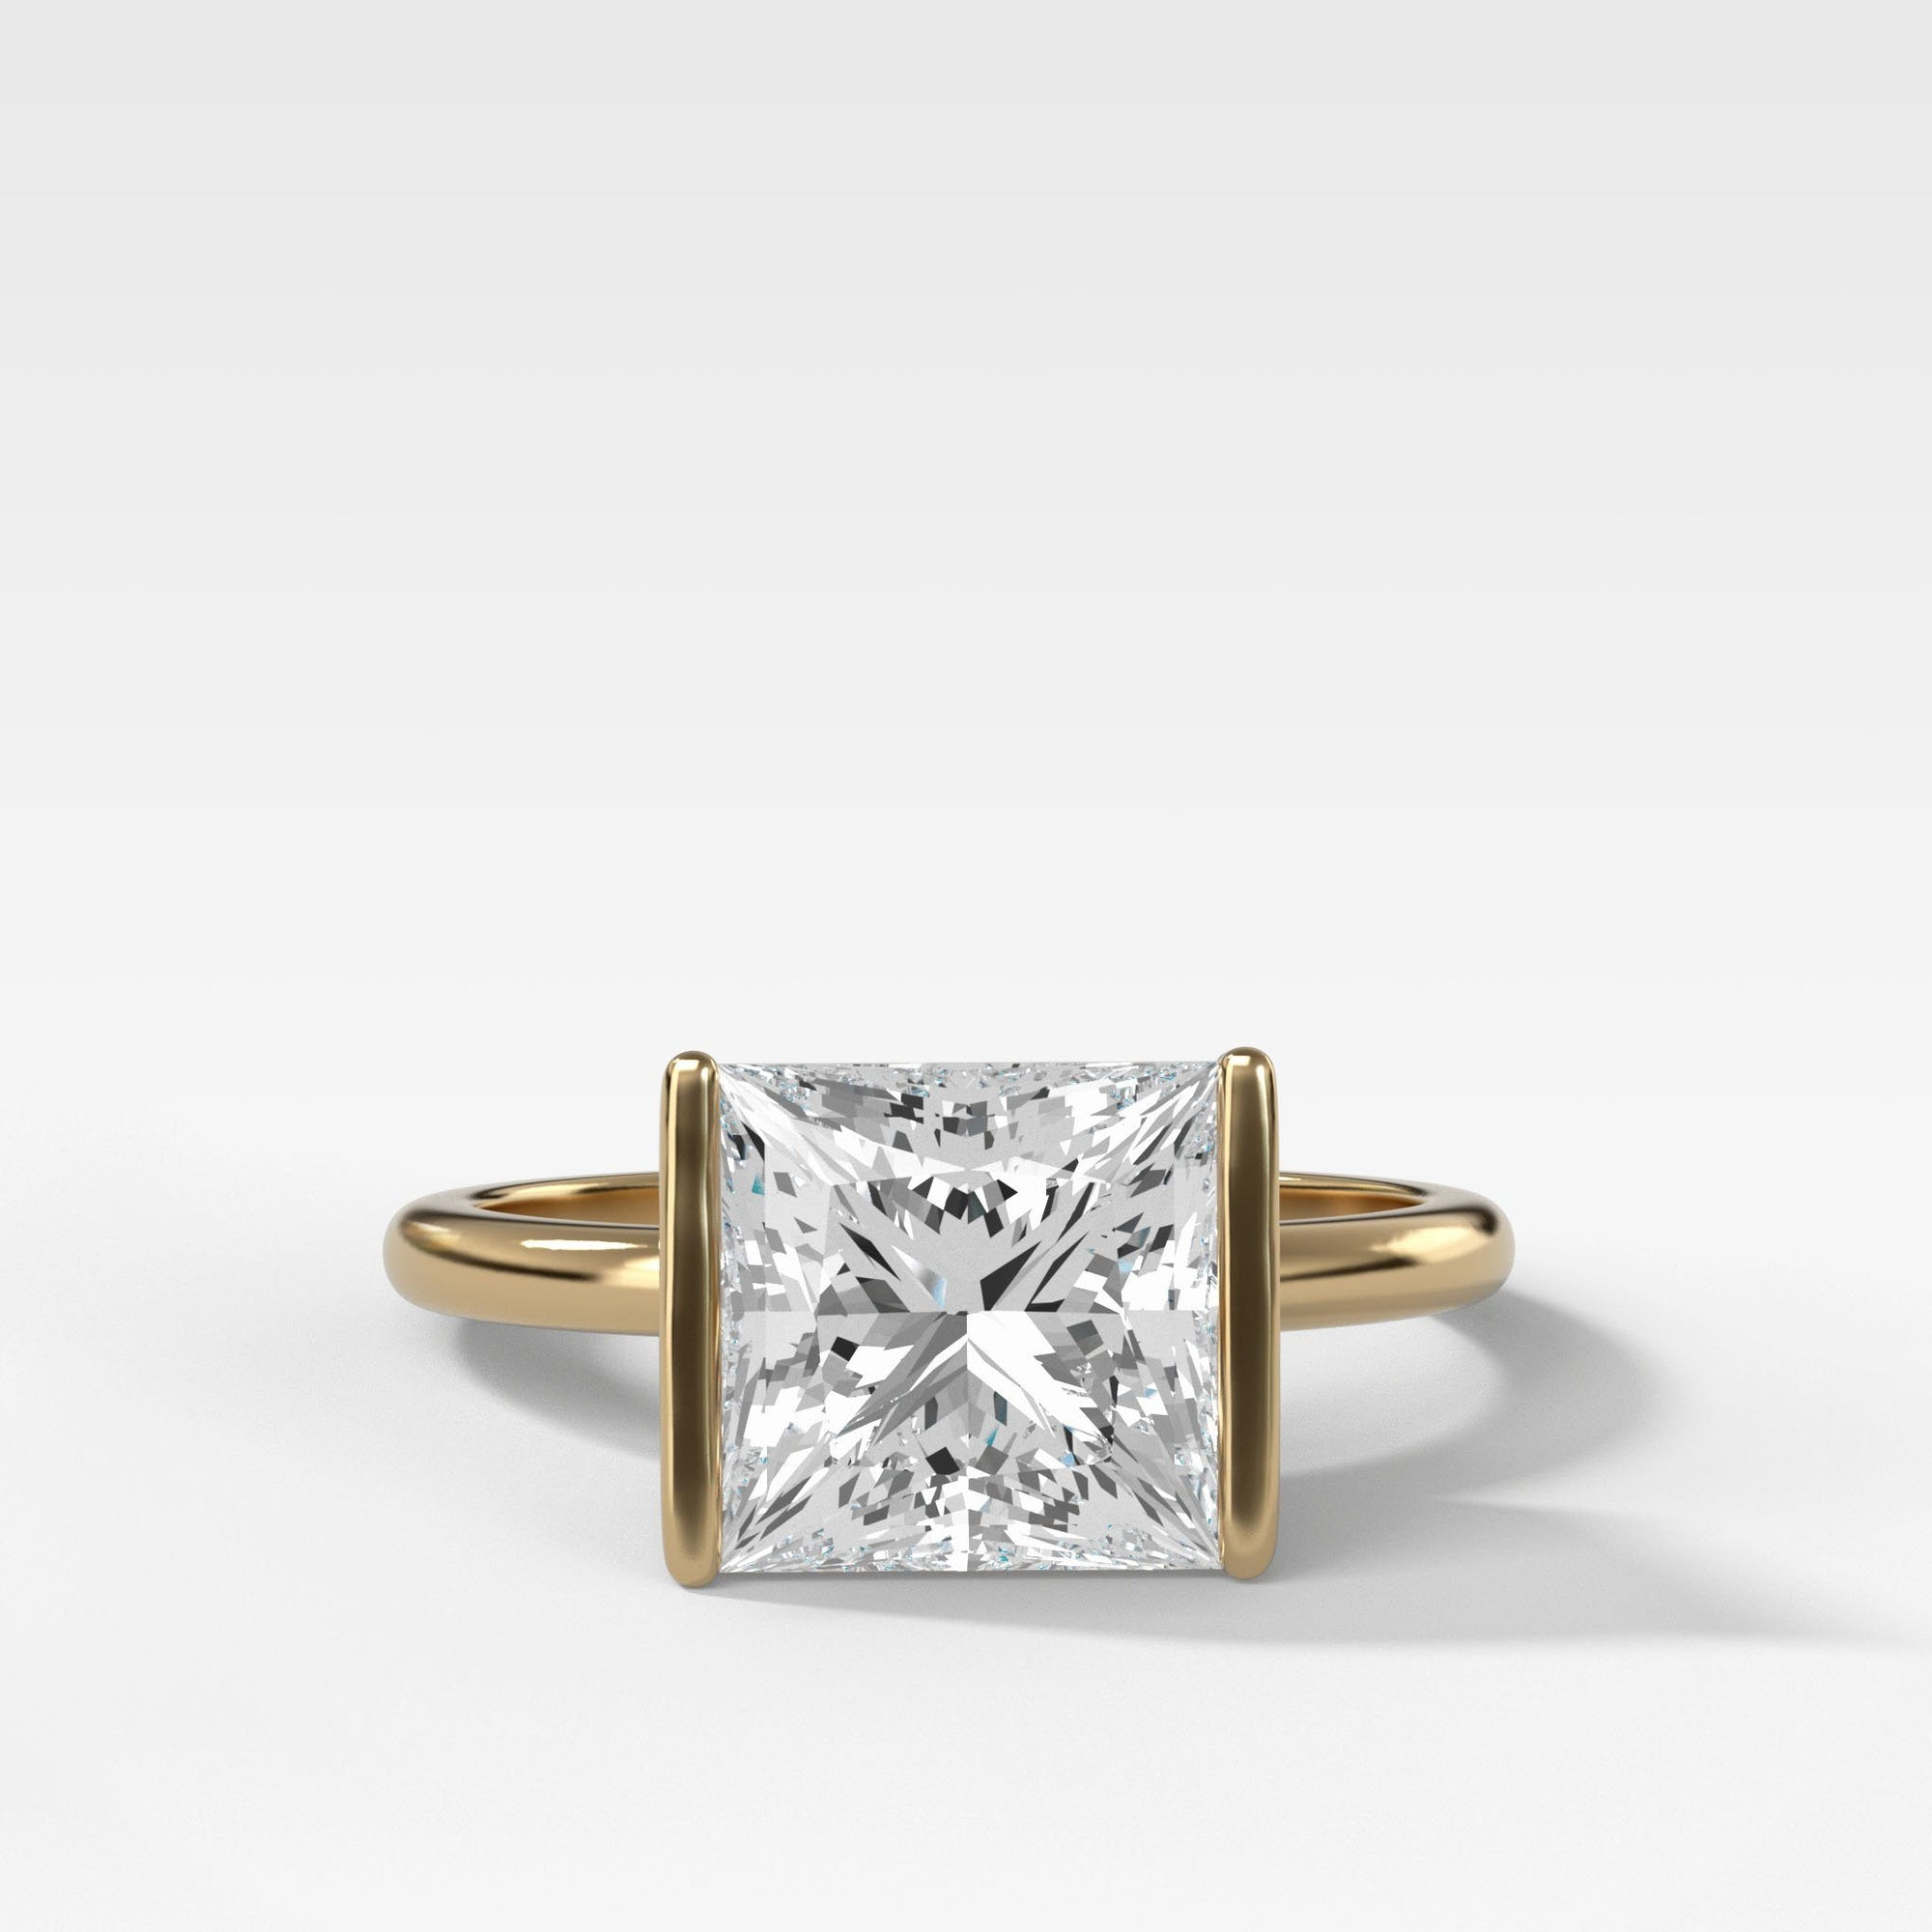 Half Bezel Solitaire Engagement Ring With Princess Cut in Yellow Gold by Good Stone